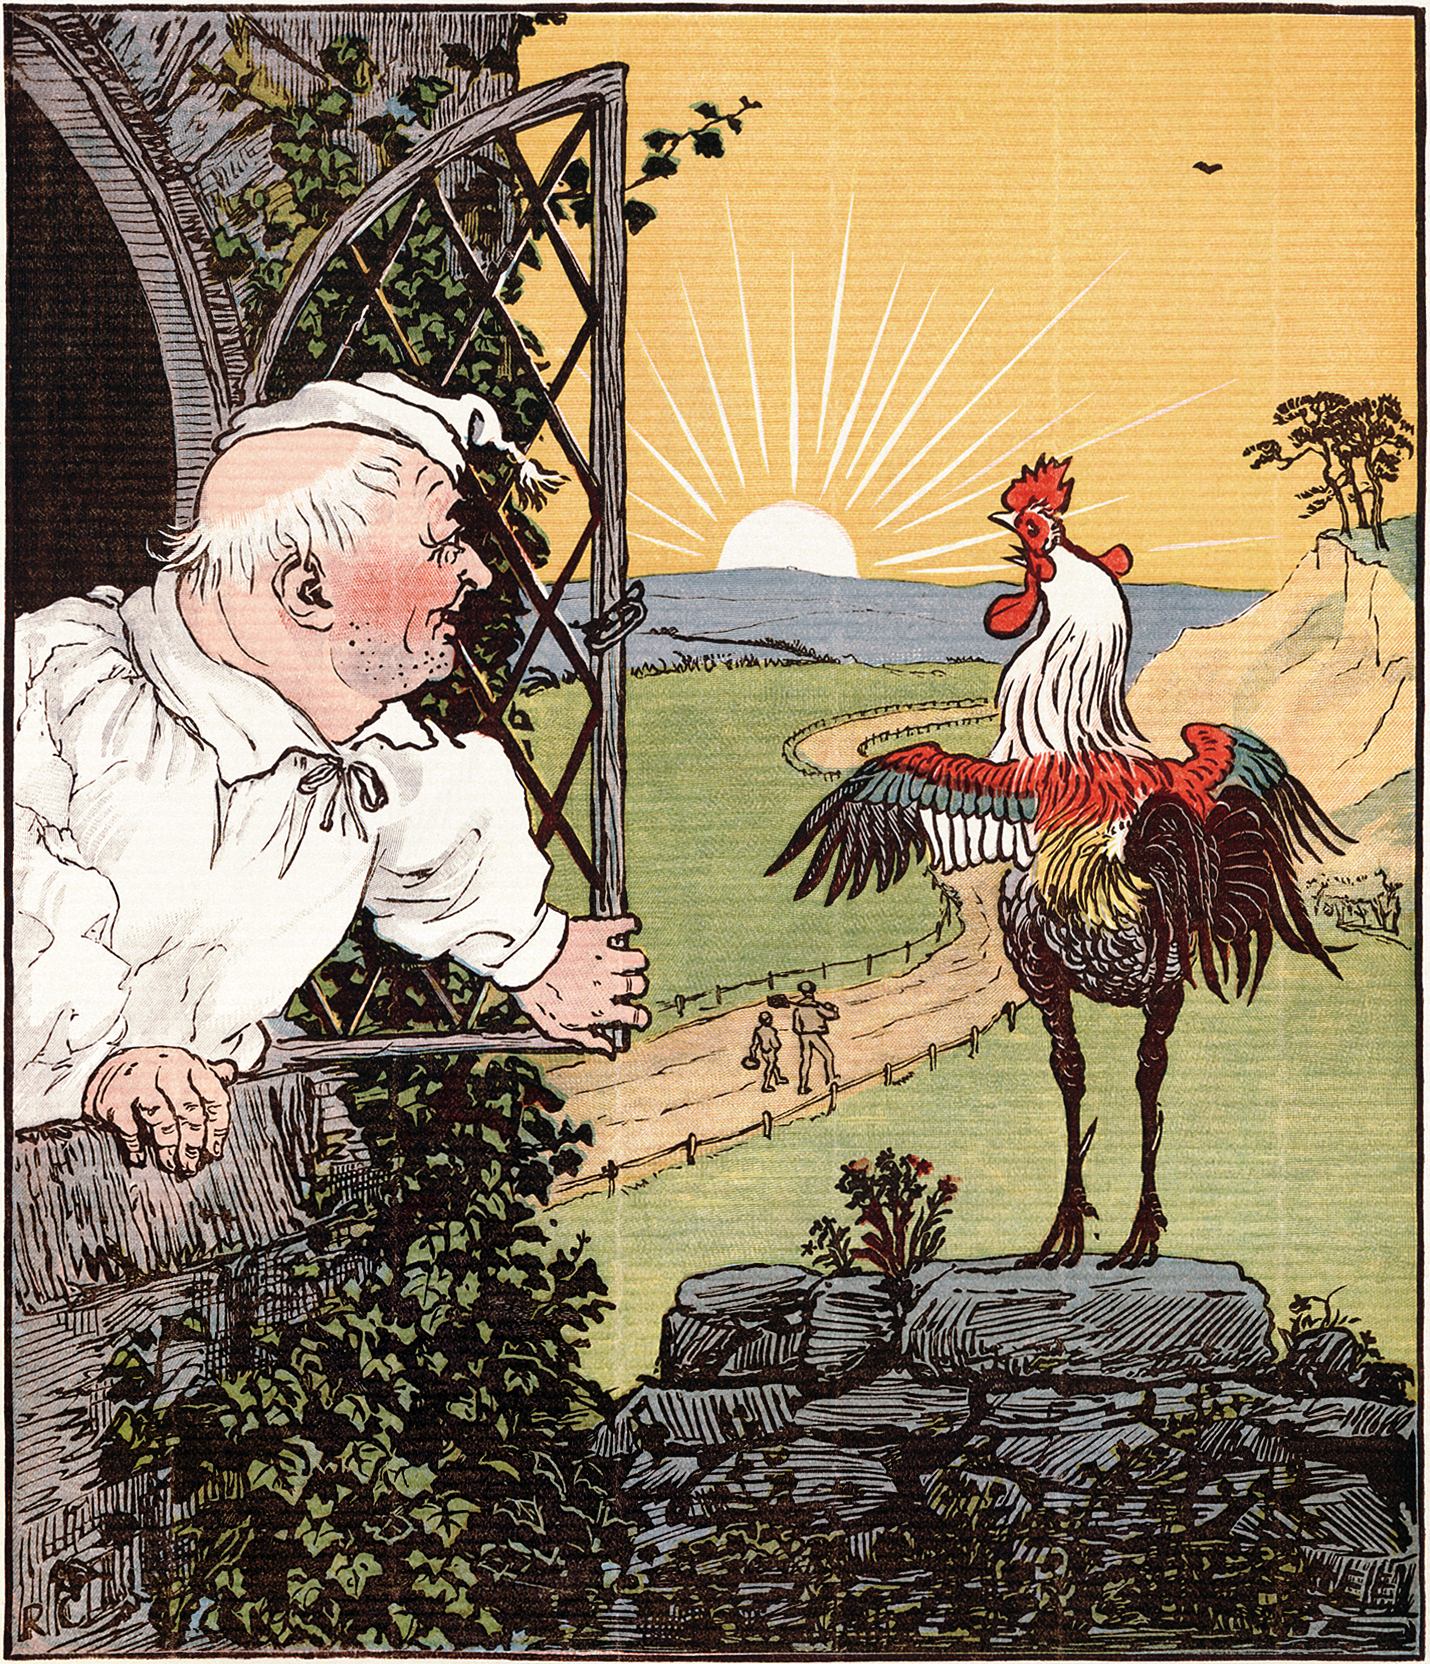 Illustration Of Crowing Rooster Facing The Rising Sun With A Man Dressed In Nightcap And